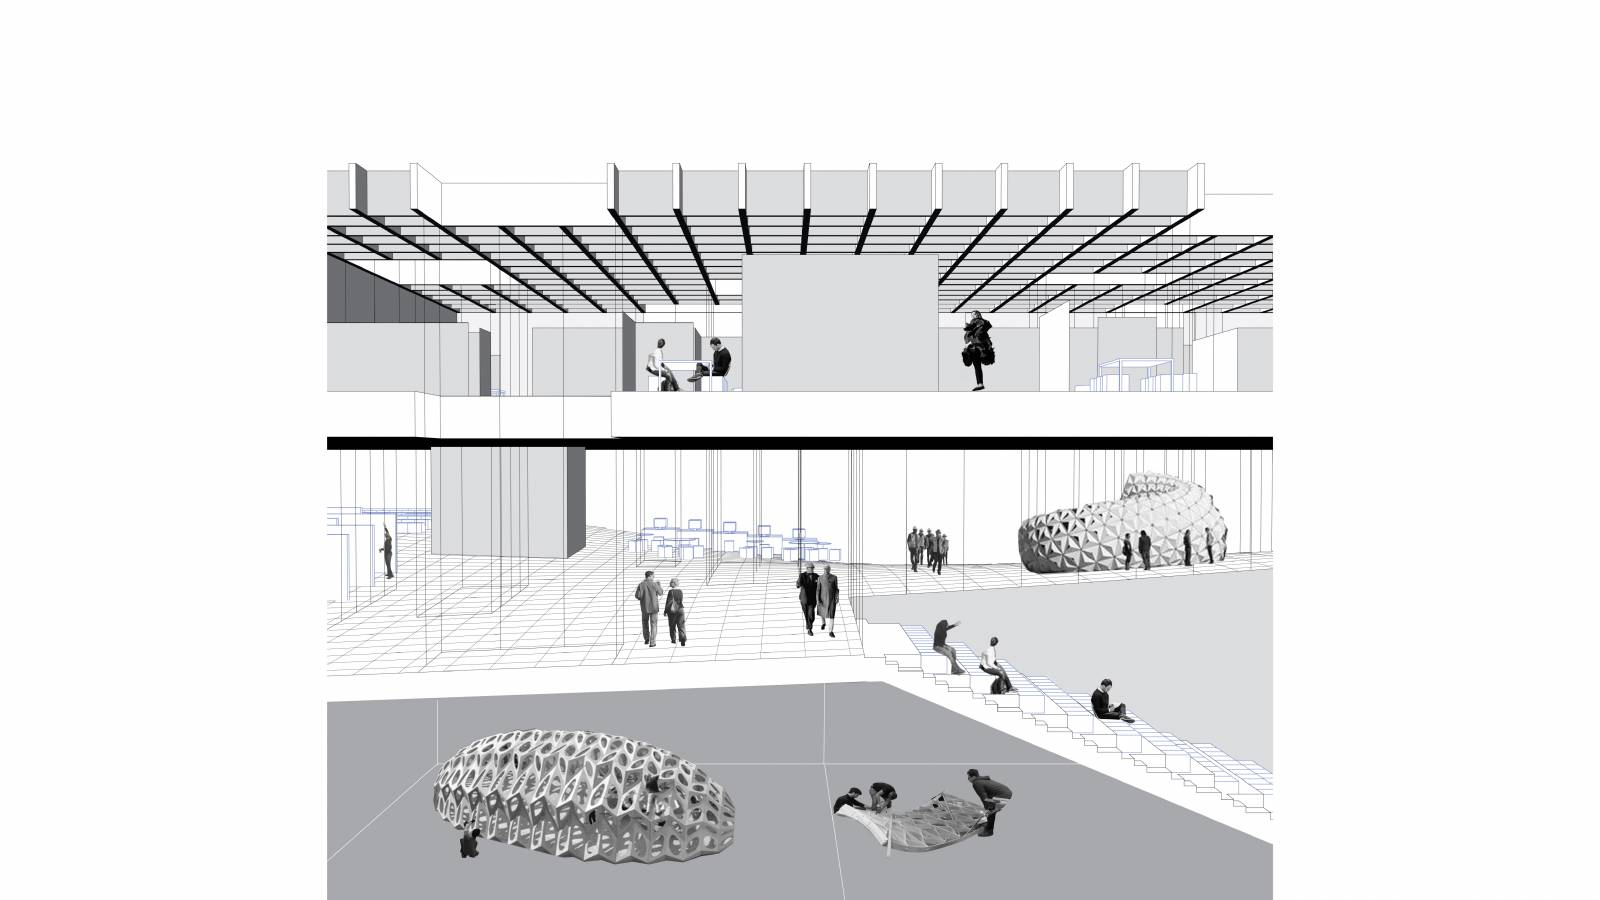 INTERIOR PERSPECTIVE 01 - NEW AARCH – FLYING CARPET - SPOL Architects